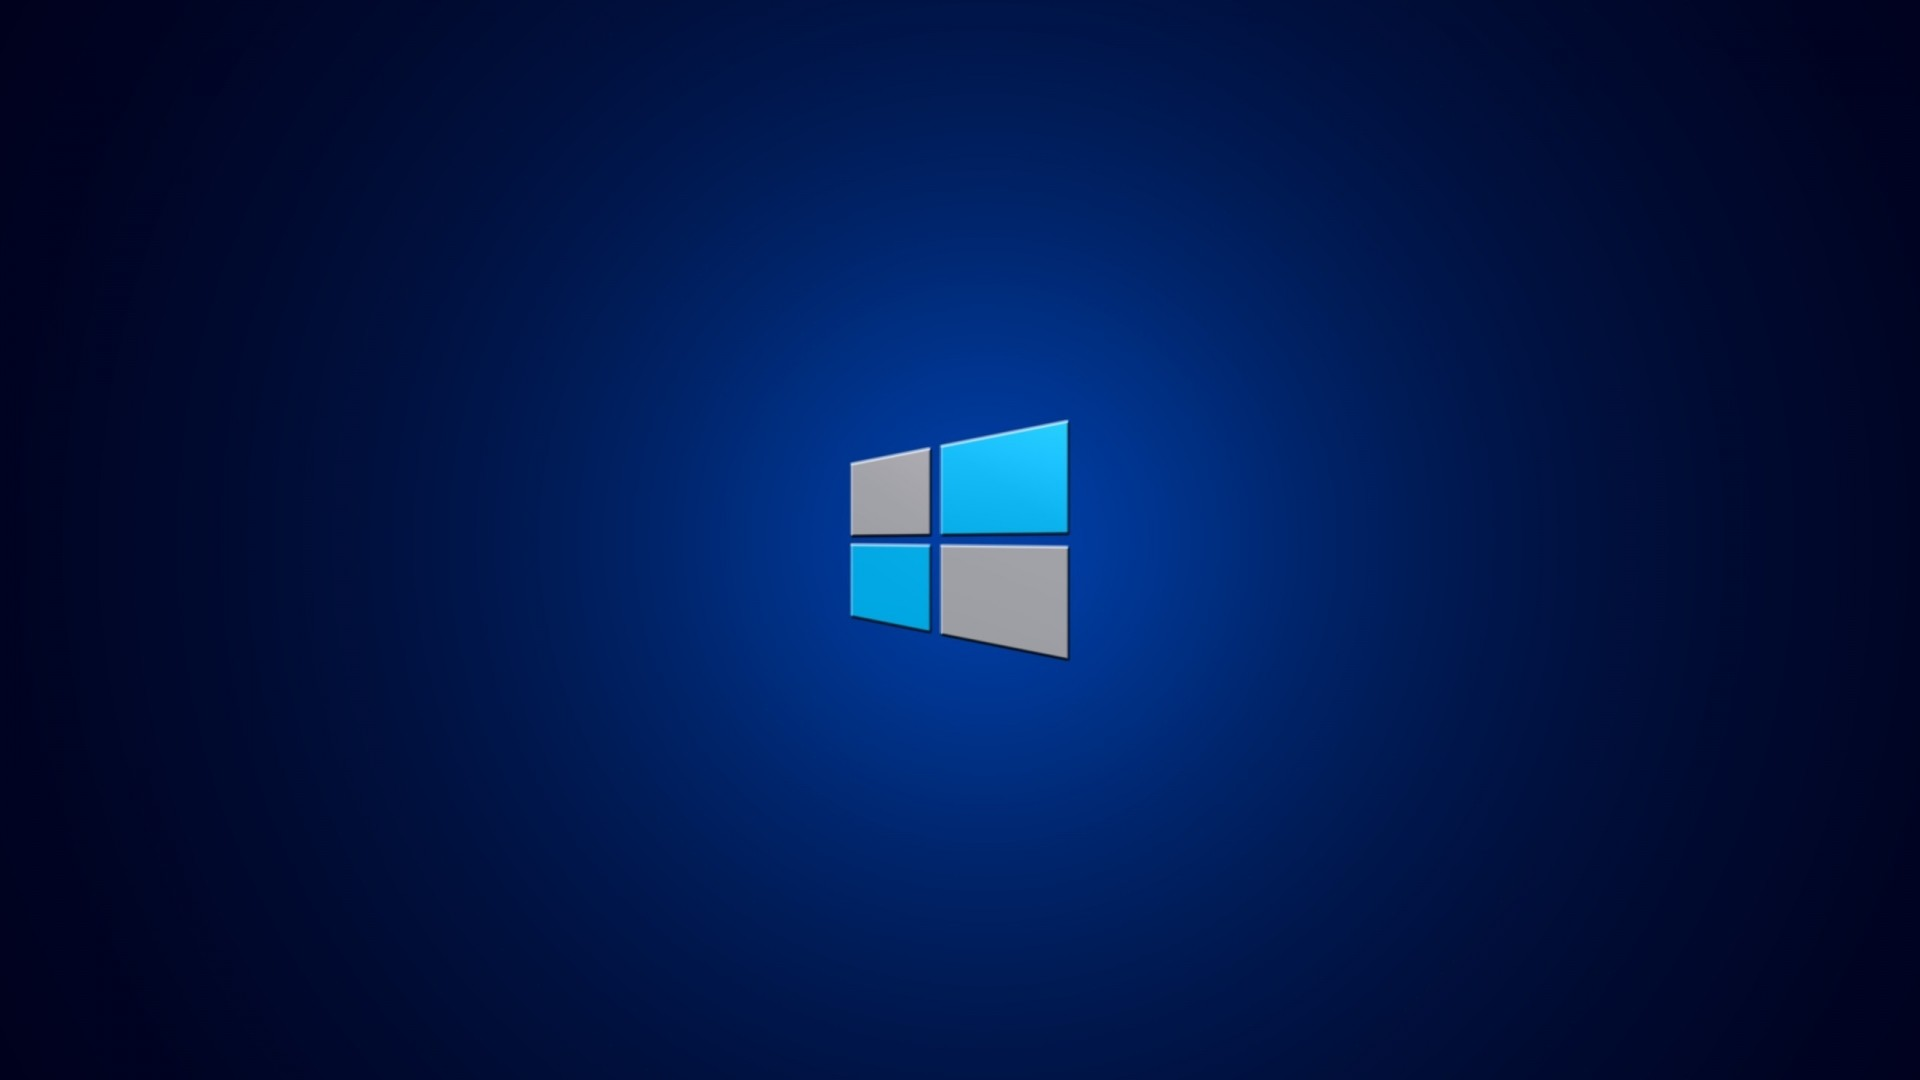 HD Wallpapers for Windows-8.1-Flat-Background-HD-Screensavers